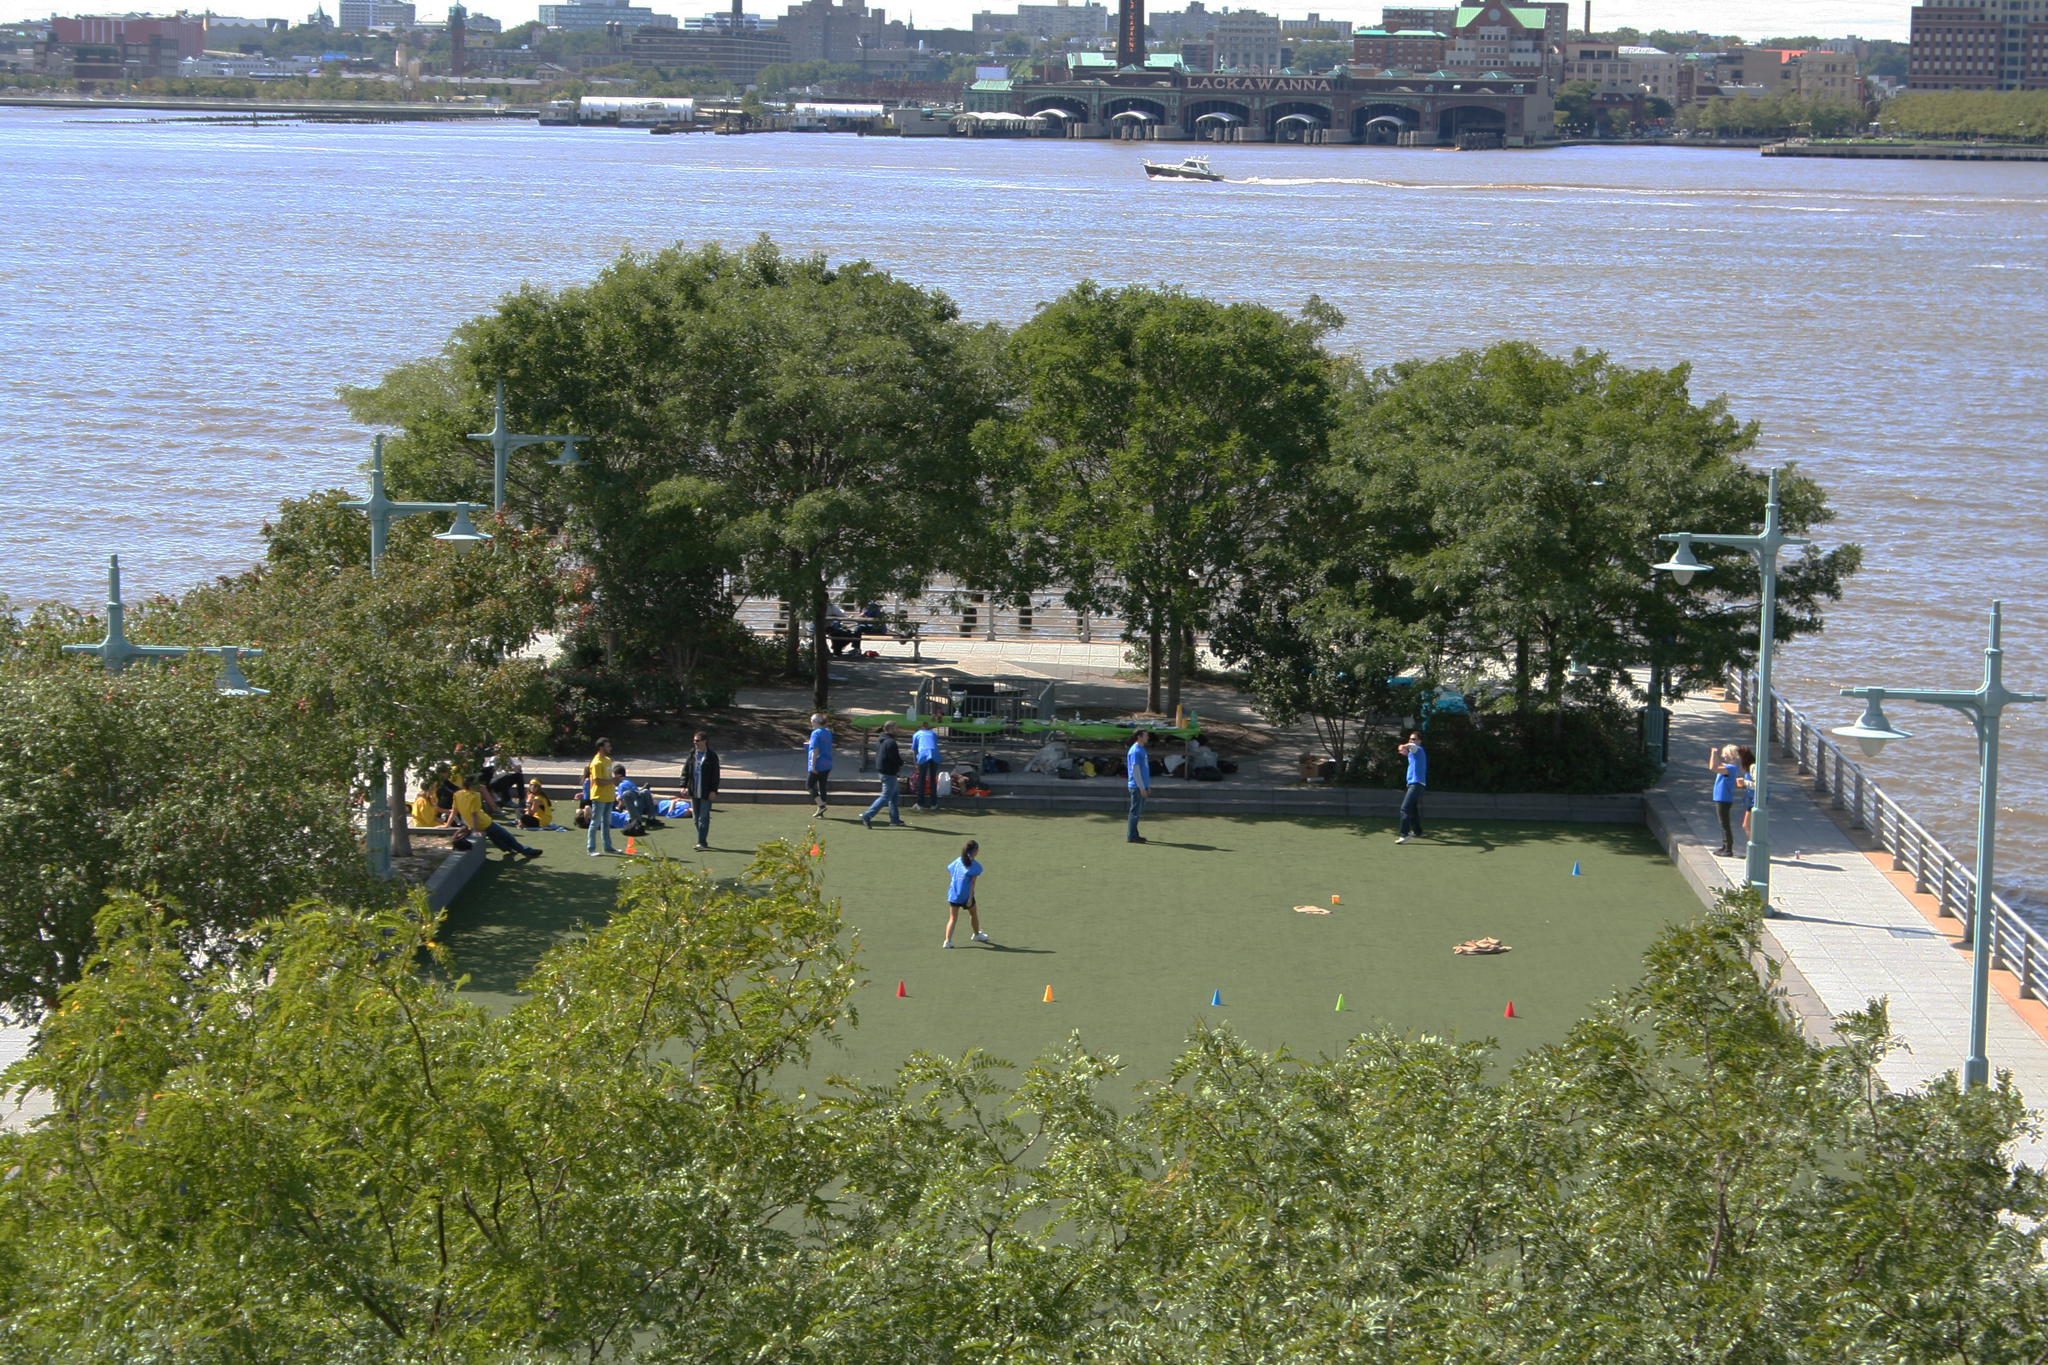 You can submit a design for the new LGBT memorial in Hudson River Park